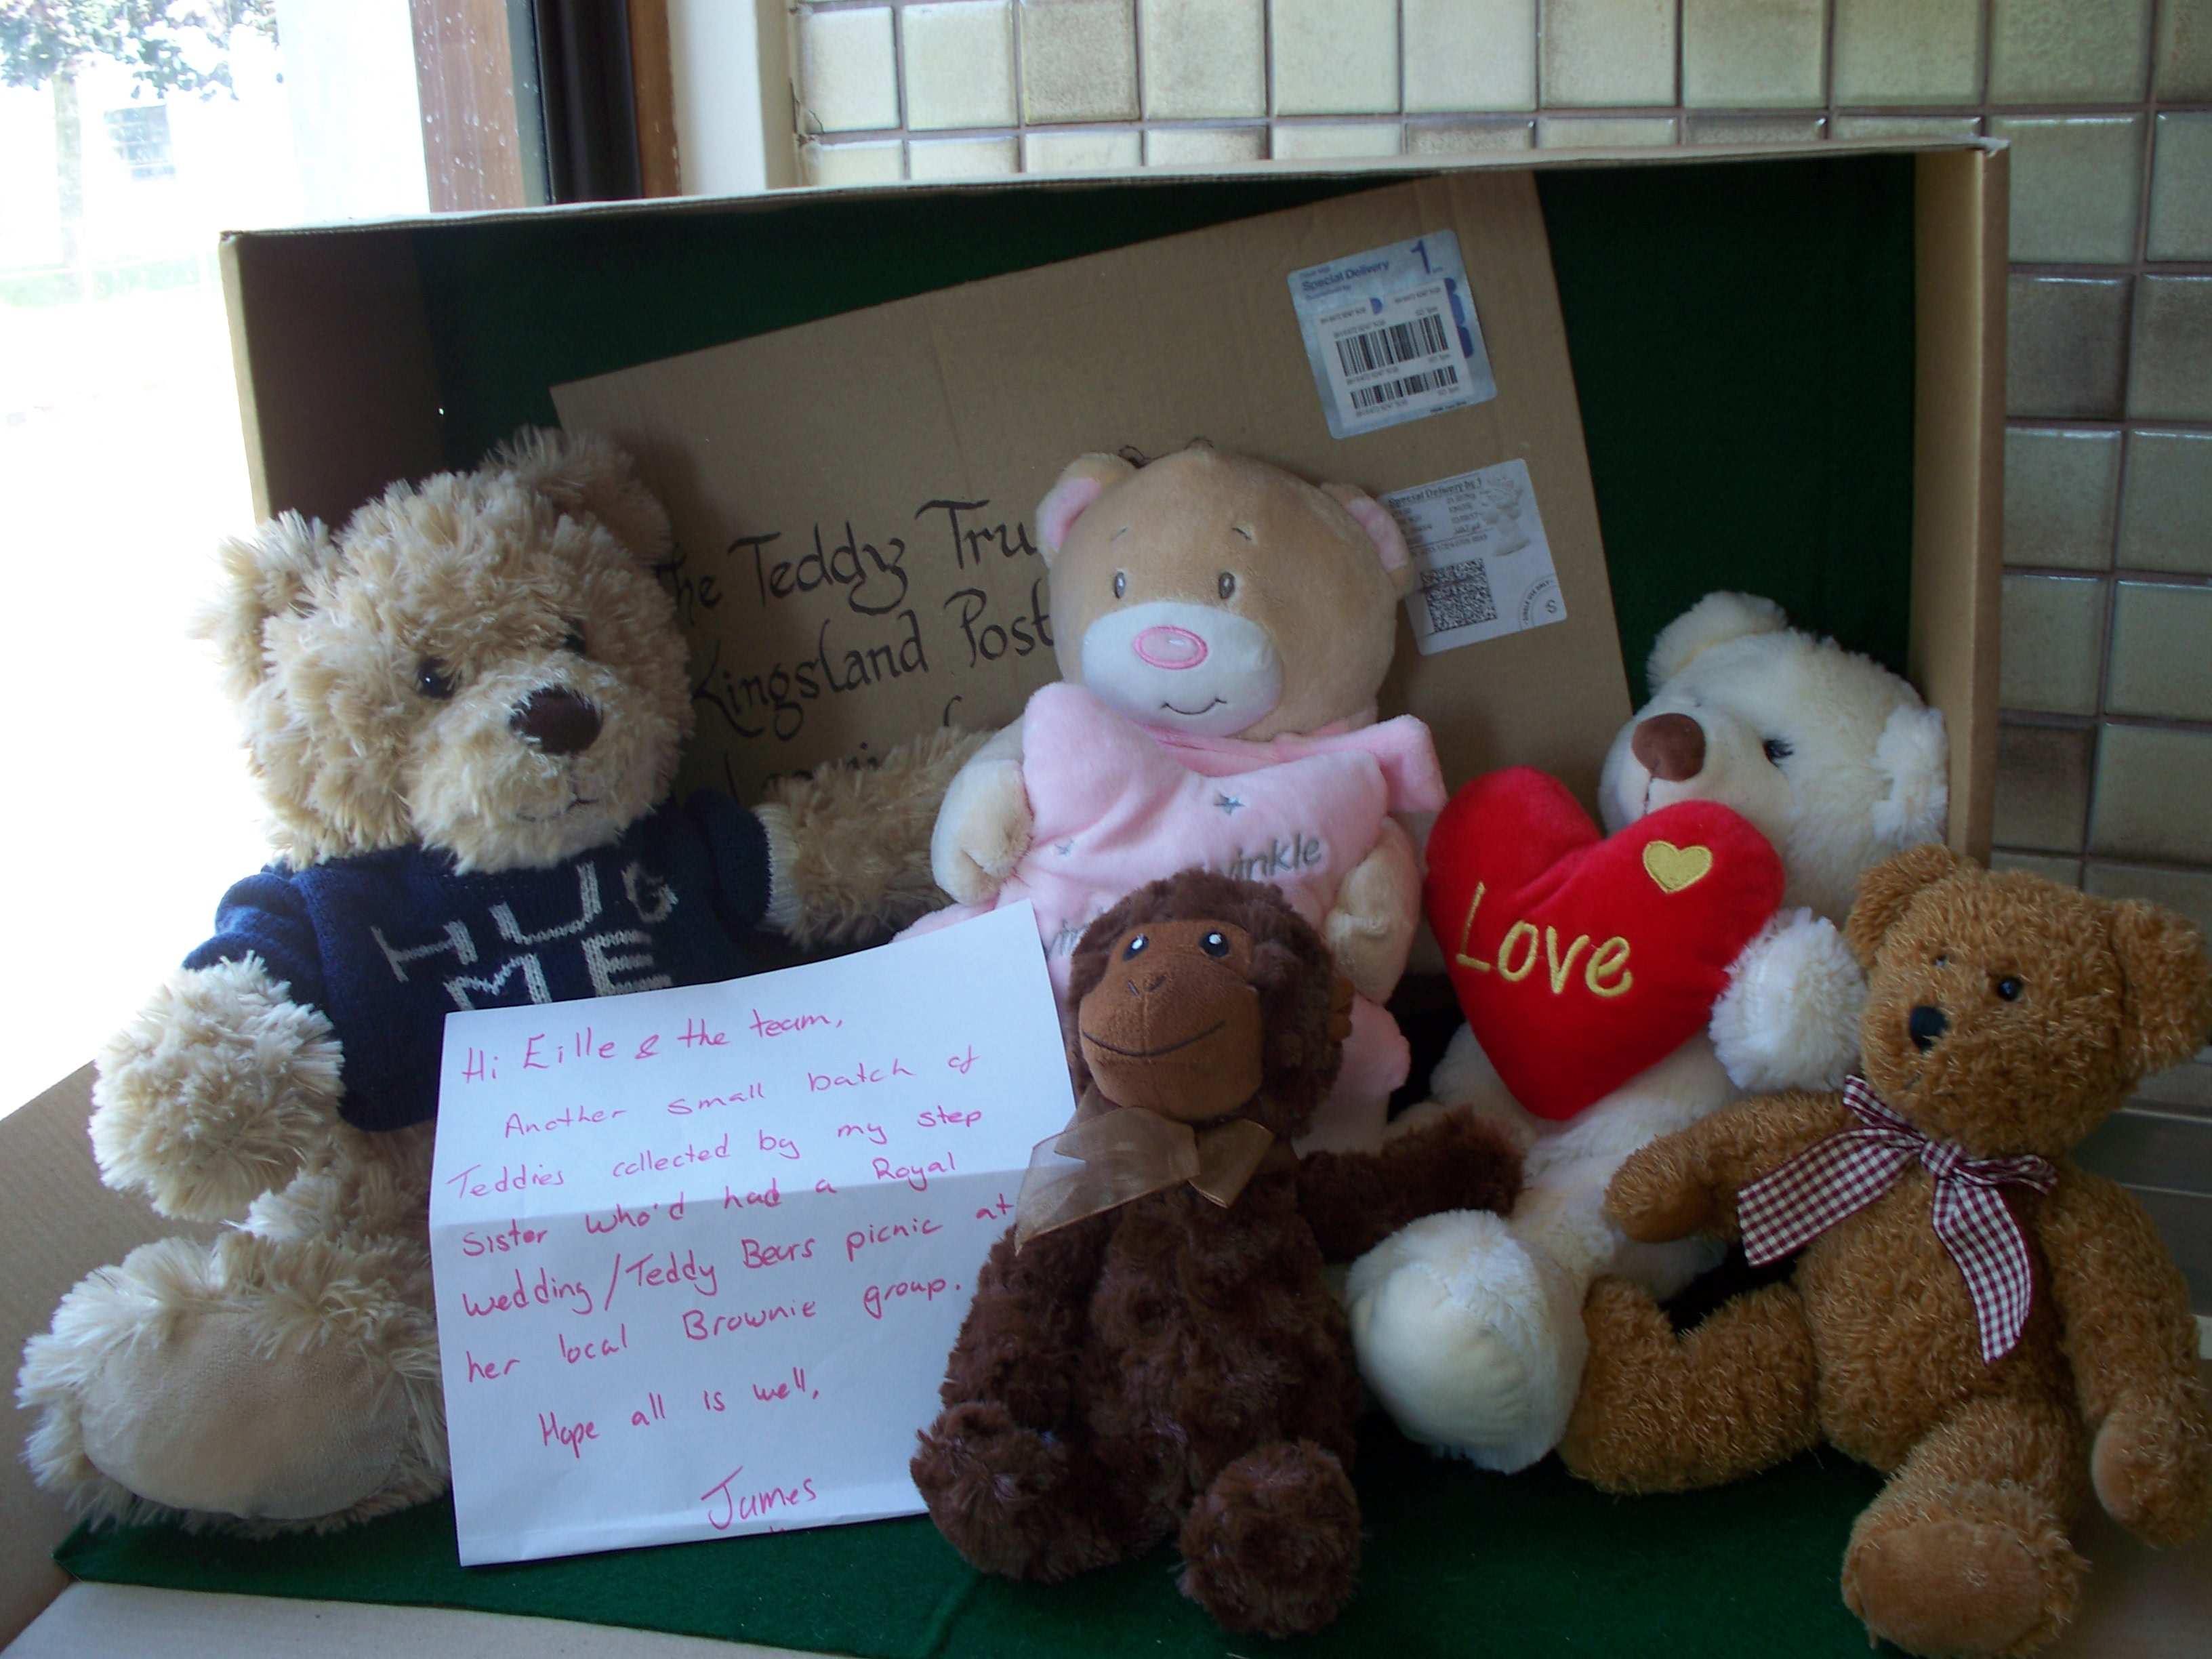 20180704 Thank you James and Brownie group at the Teddy Bears Picnic